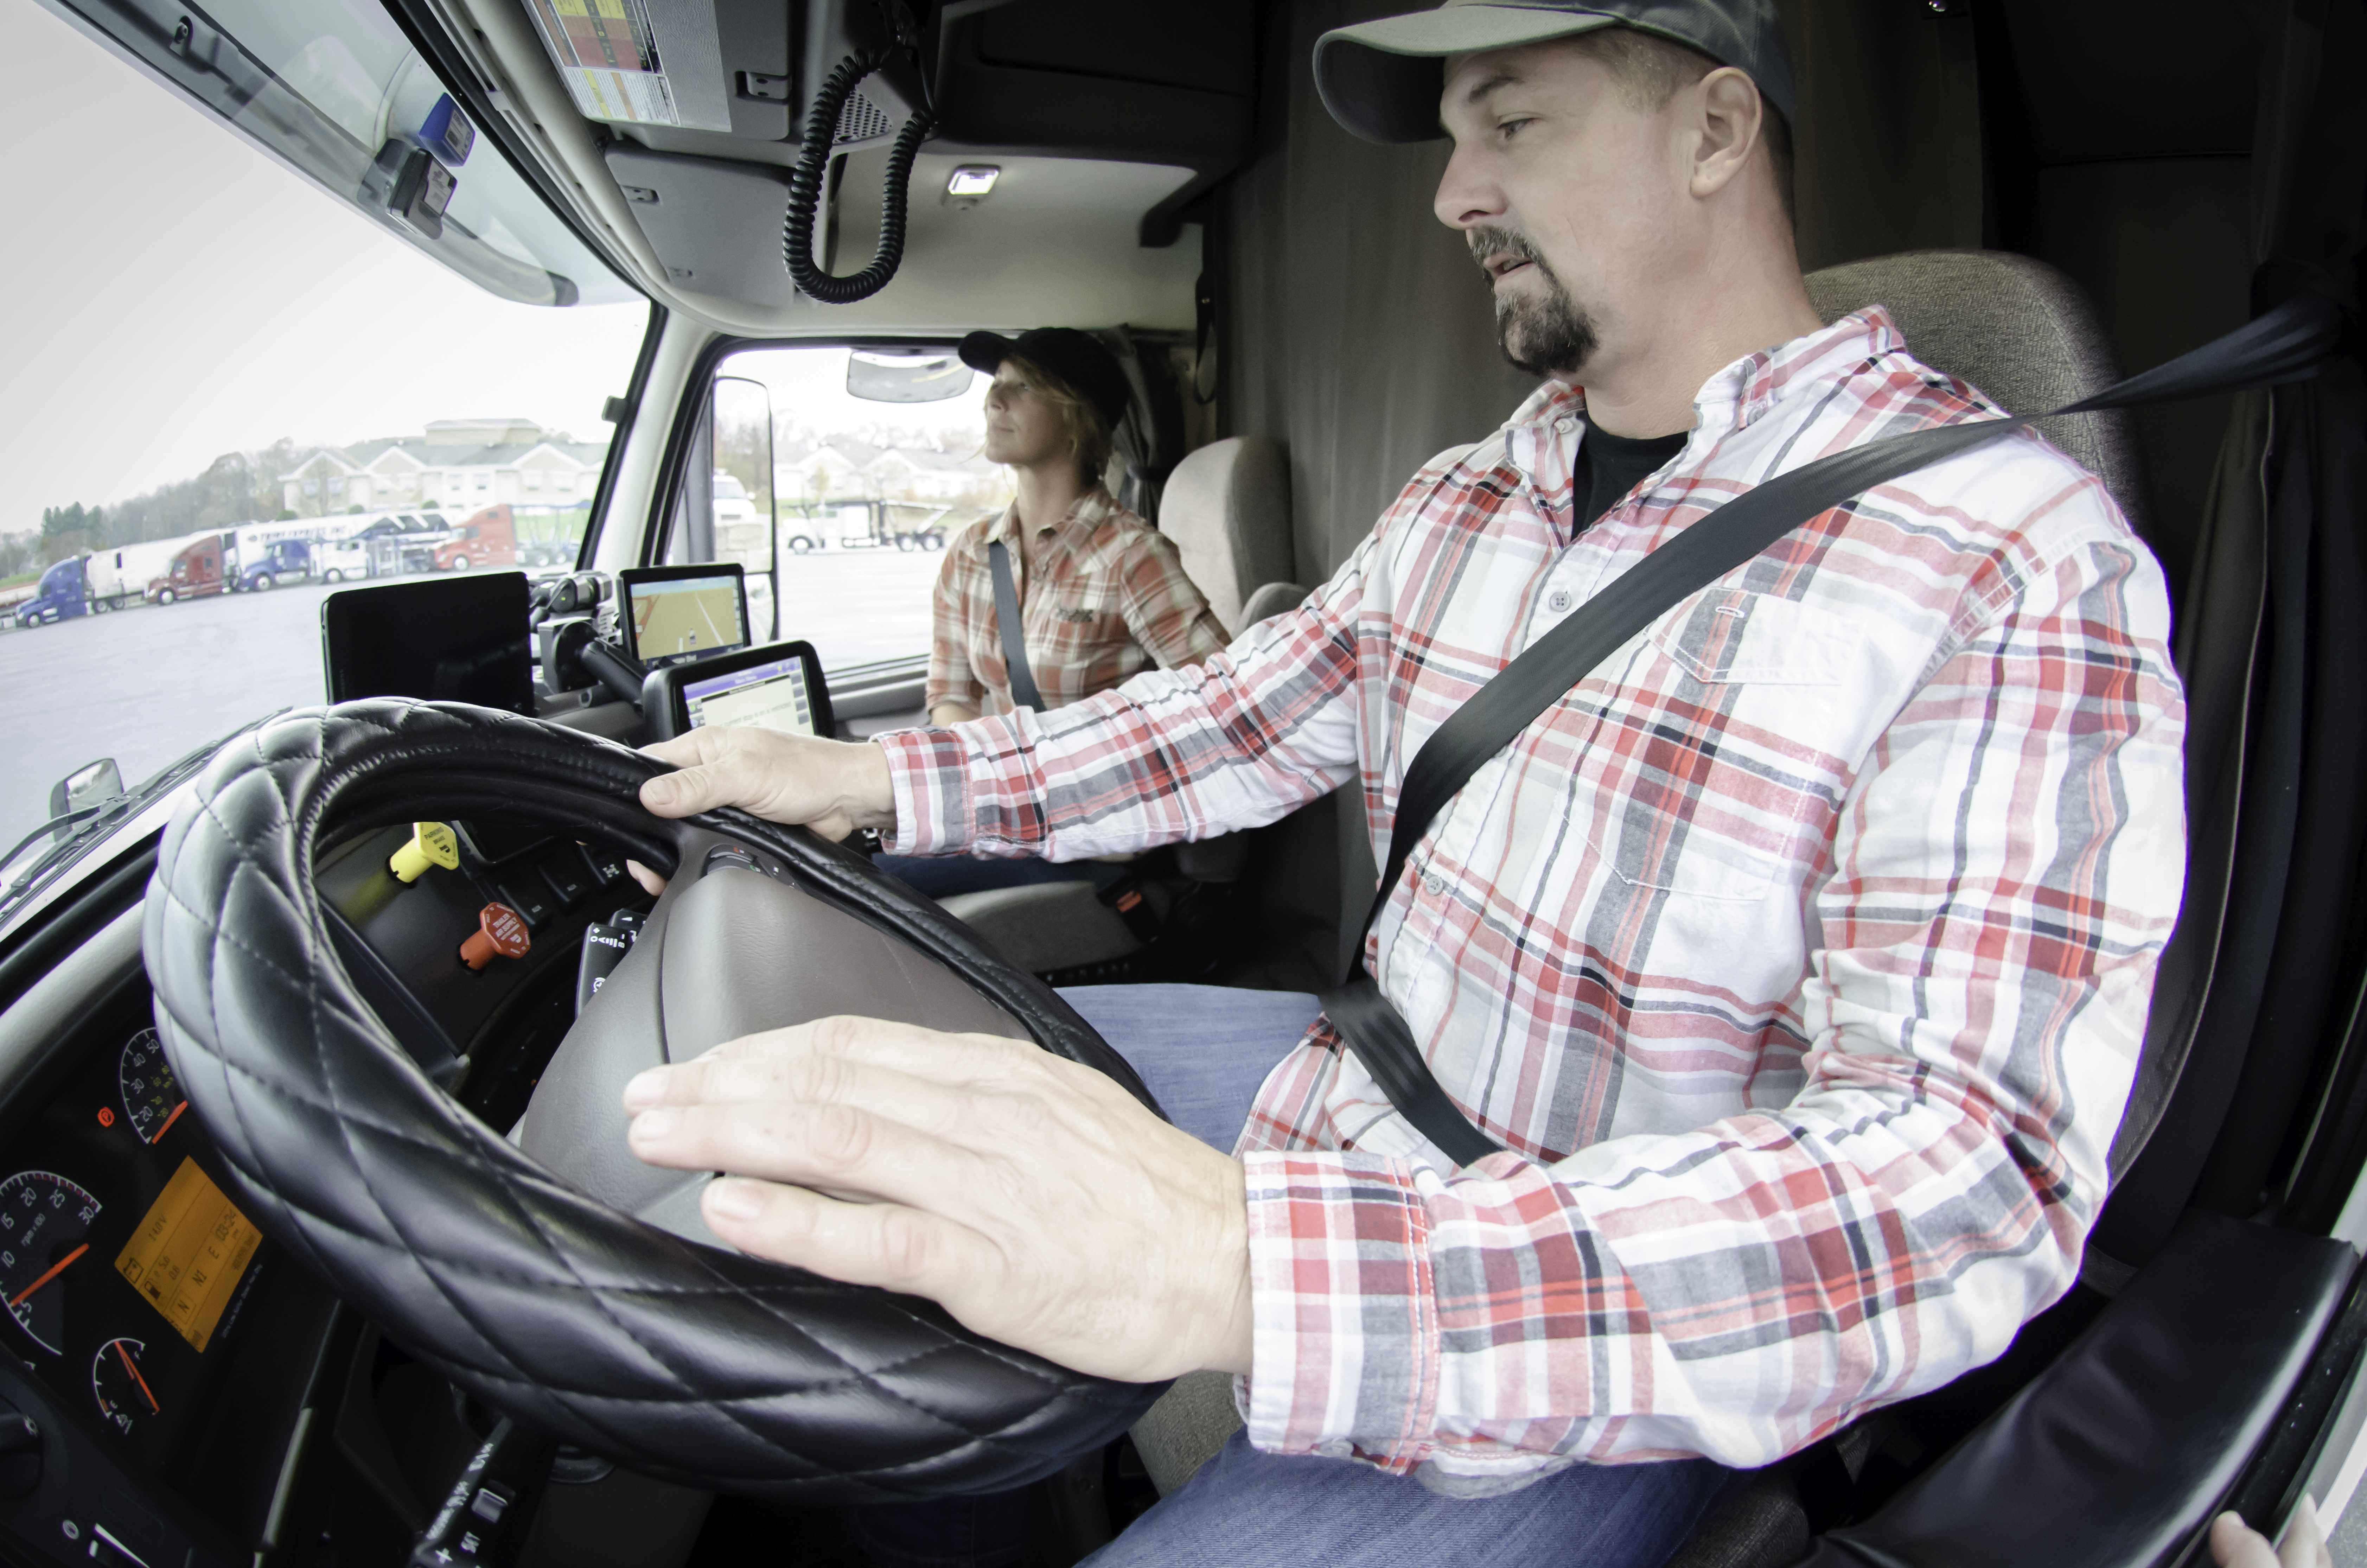 FMCSA's driver training rule is scheduled to take effect in February of 2020.